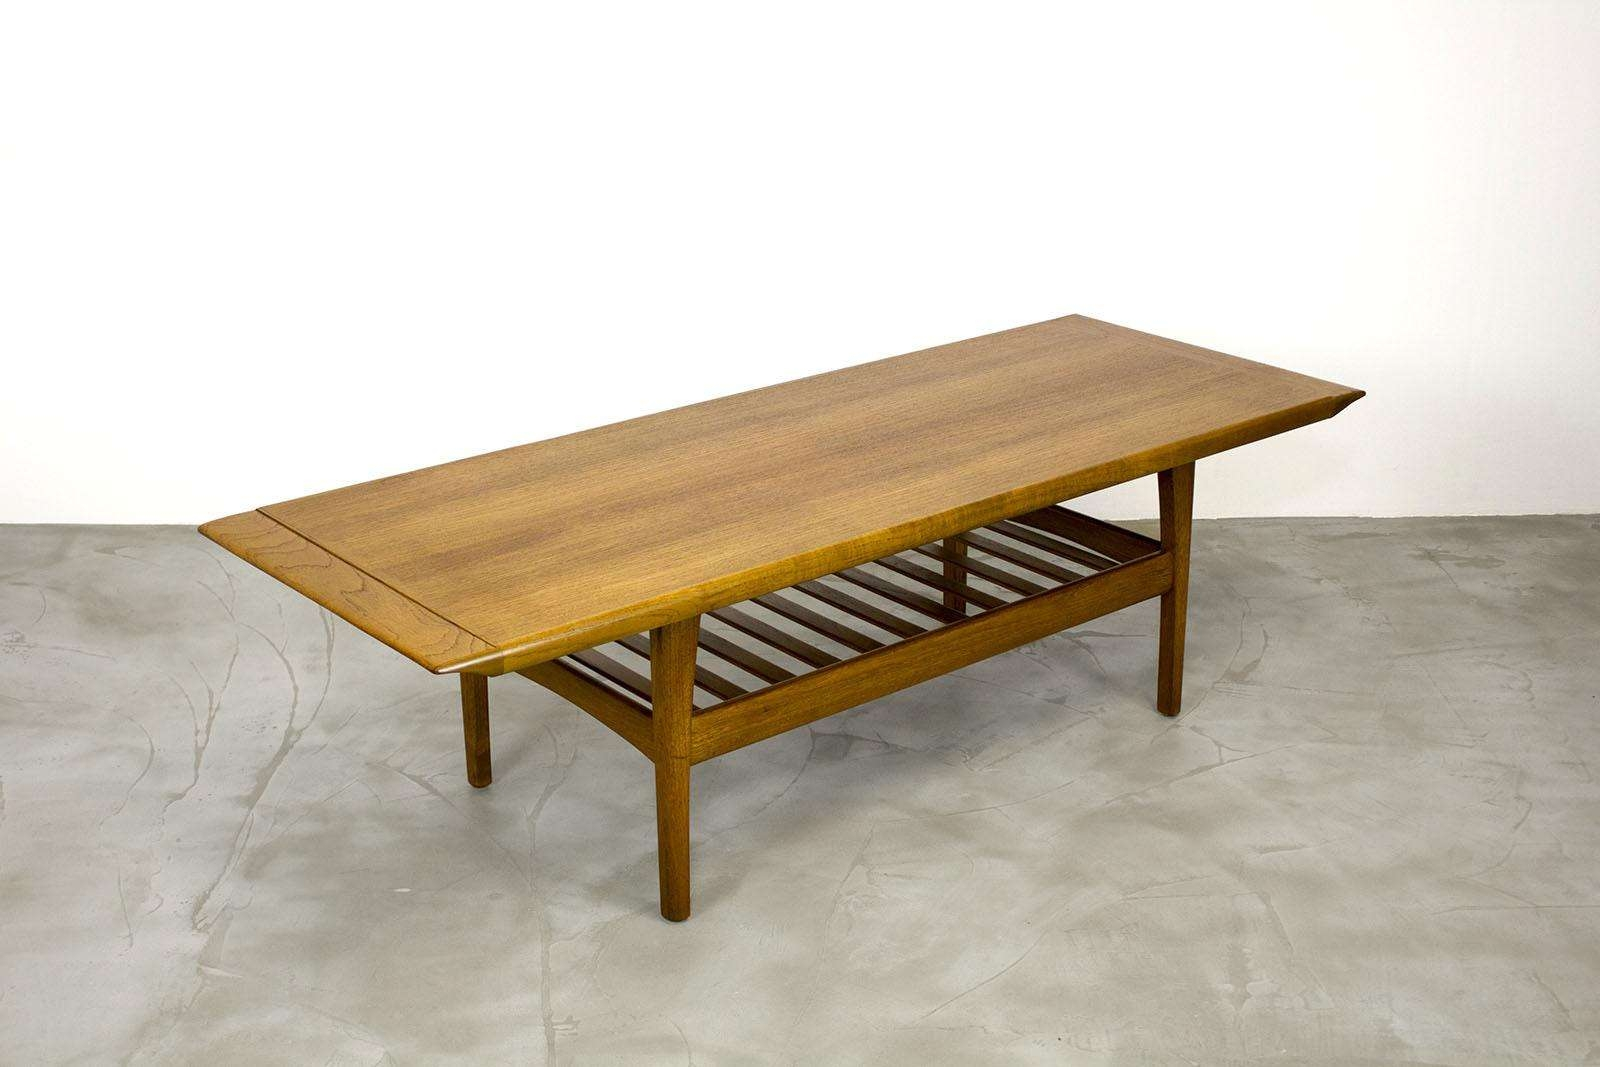 Danish Teak Coffee Table With Magazine Shelf, 1960s For Sale At Pamono Within Widely Used Coffee Tables With Magazine Rack (View 8 of 20)